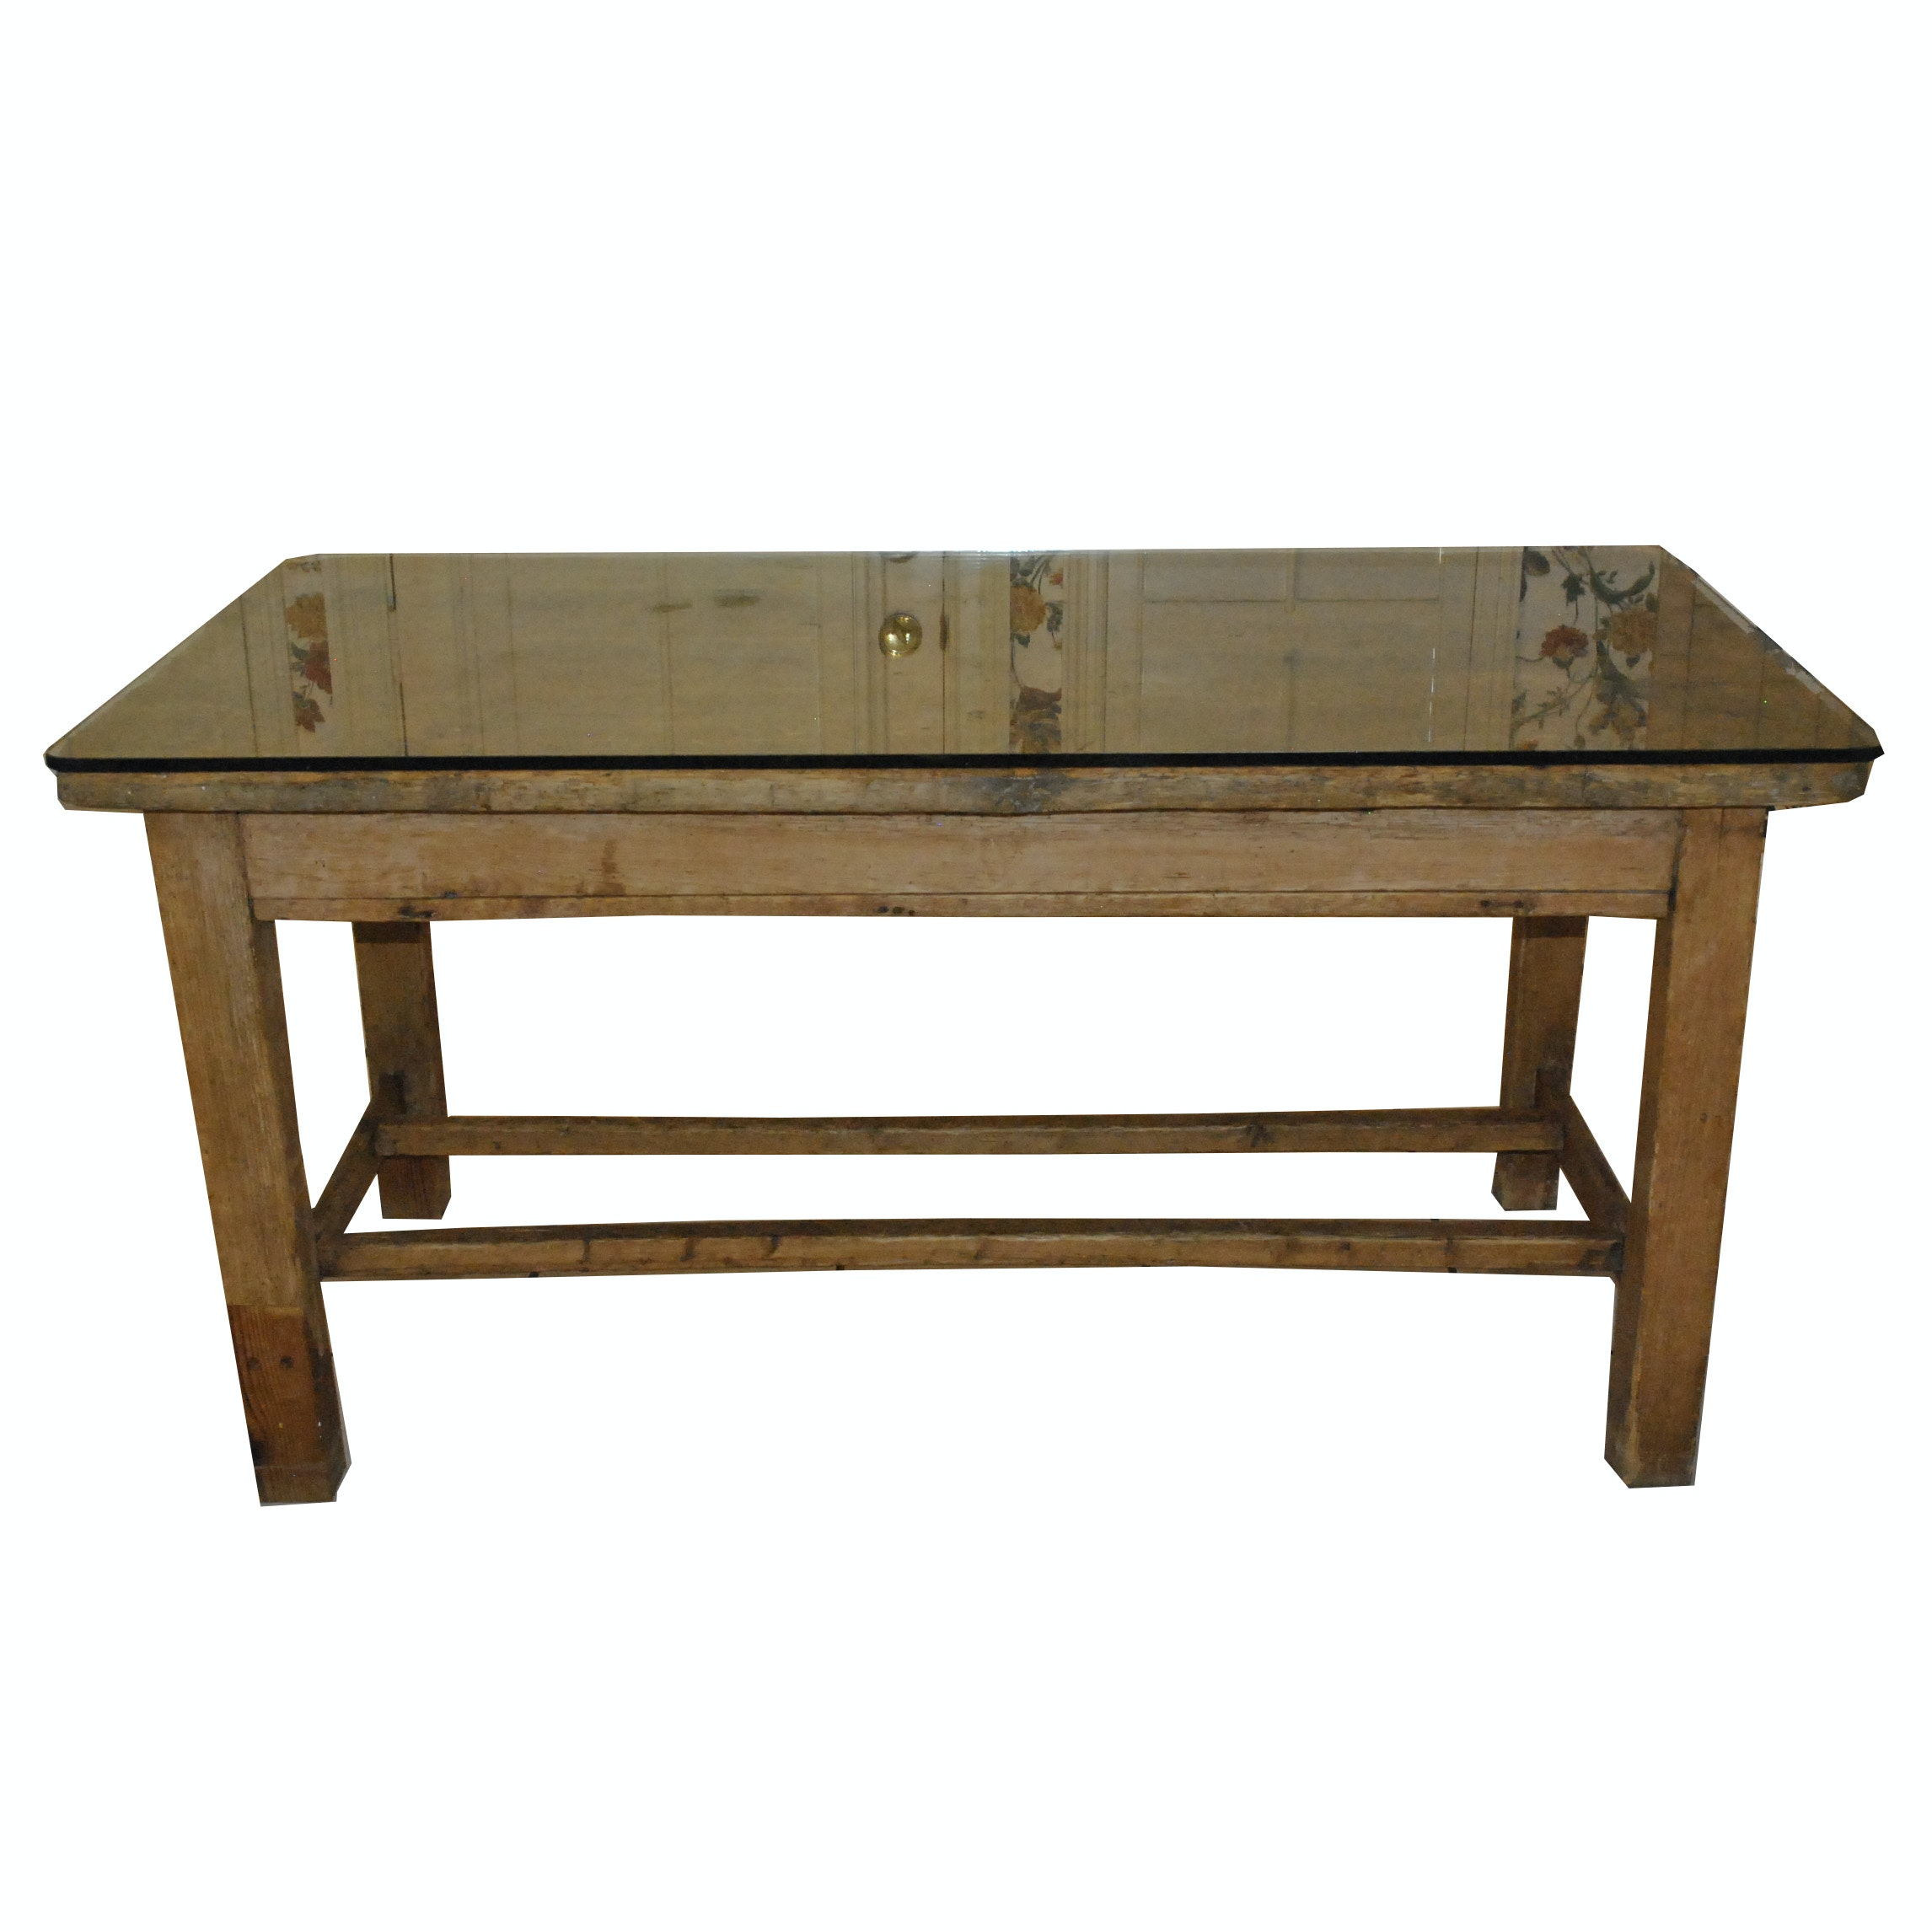 Antique Pine Kitchen Work Table with Glass Top